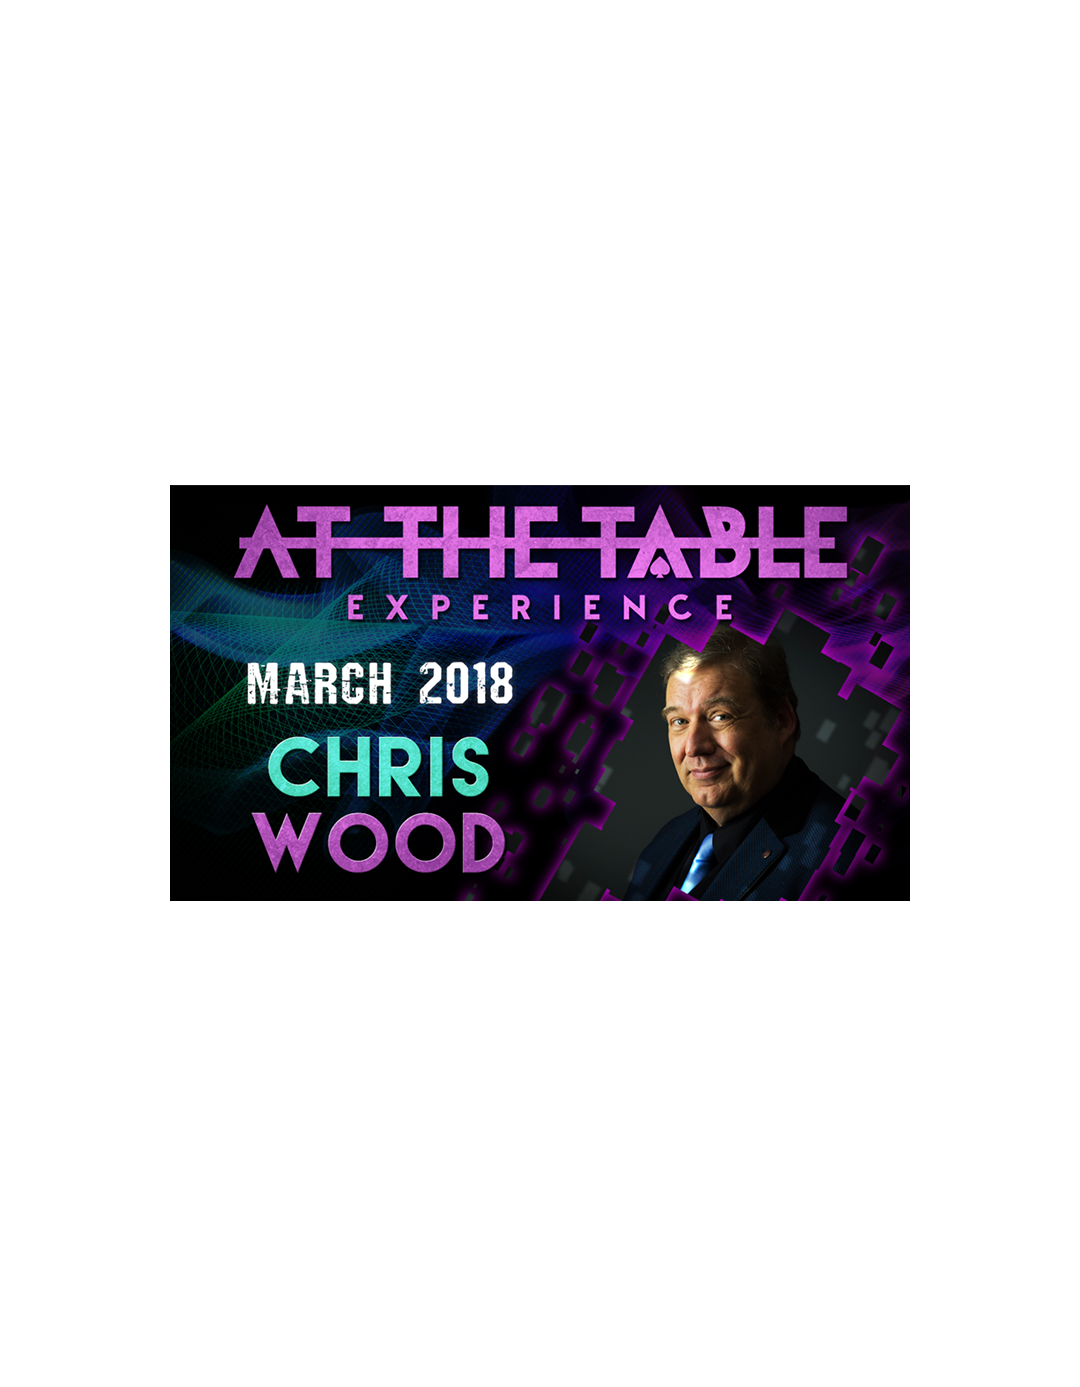 At The Table Live Lecture Chris Wood 21 Martie 2018 - At the table lecture